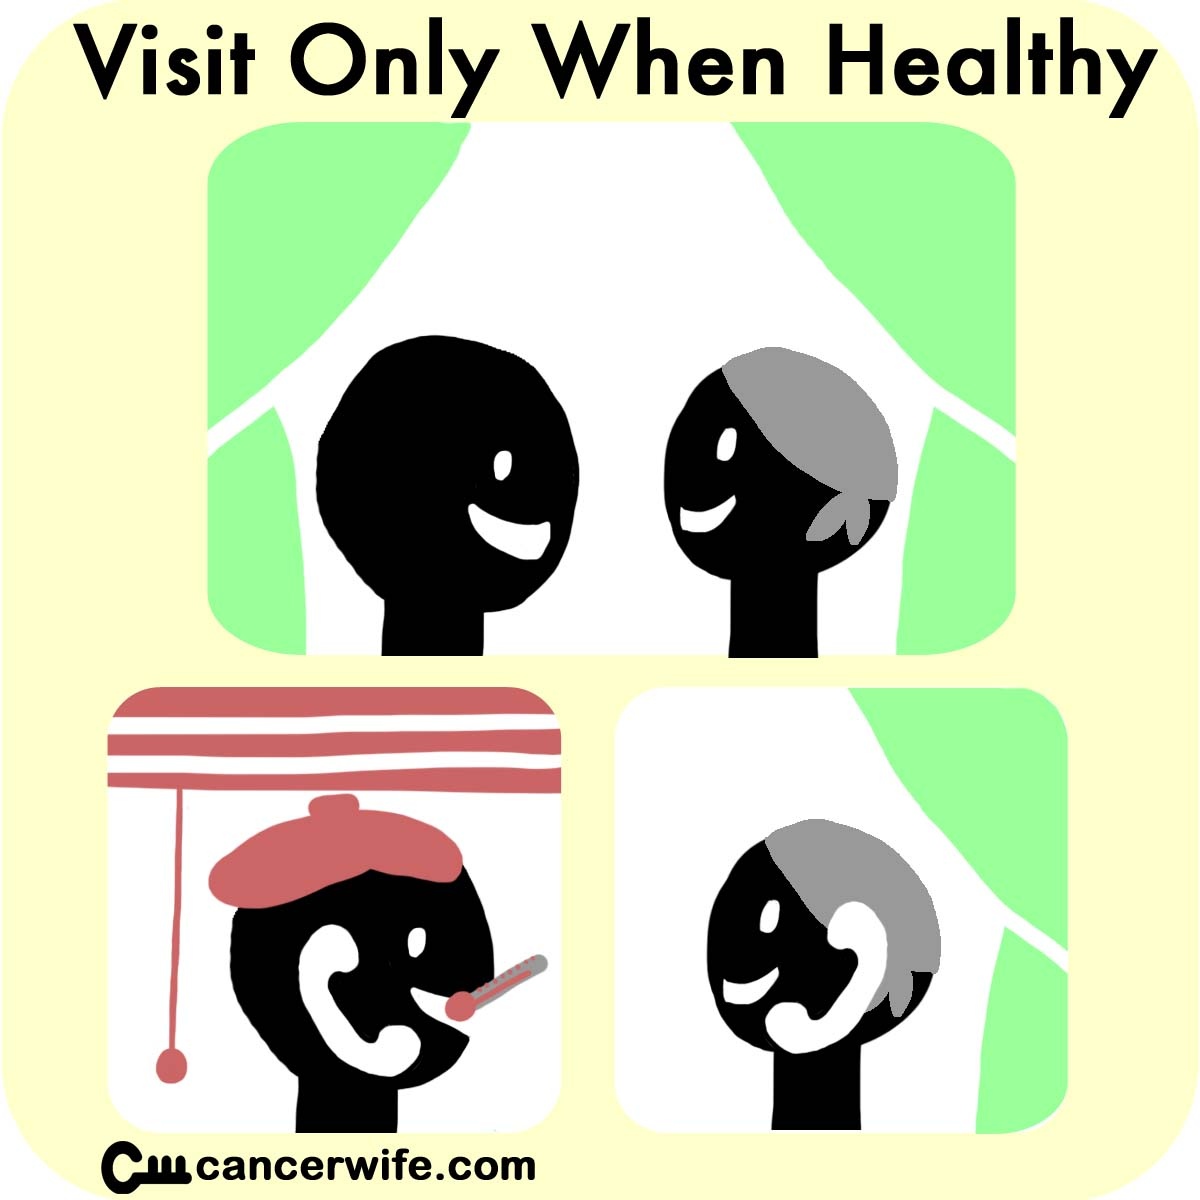 Tipsfor visitmg cancer patients, only visit when healthy